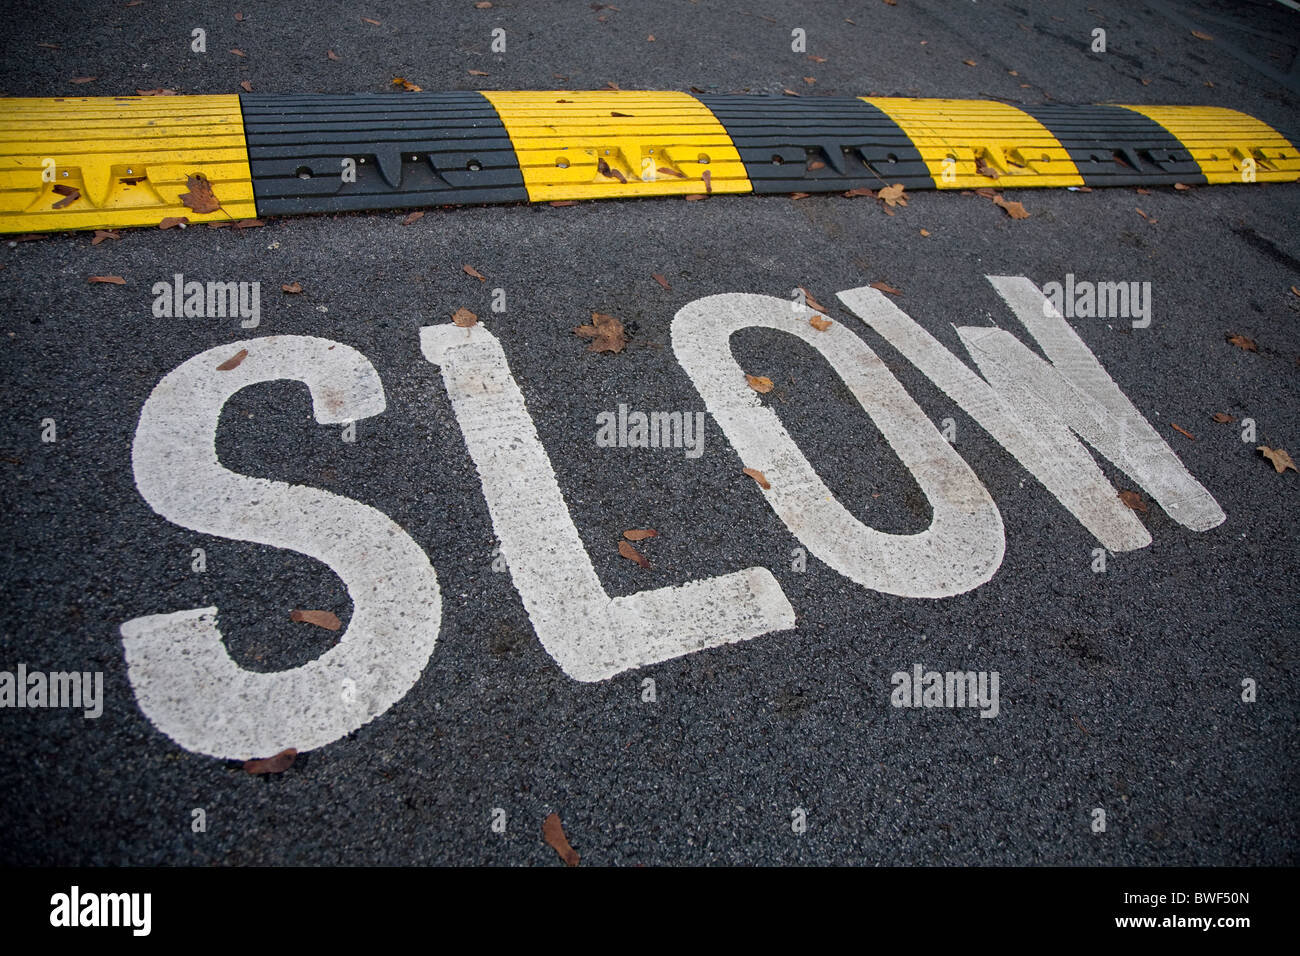 yellow and black sleeping policeman speed hump and slow sign on tarmac road - Stock Image